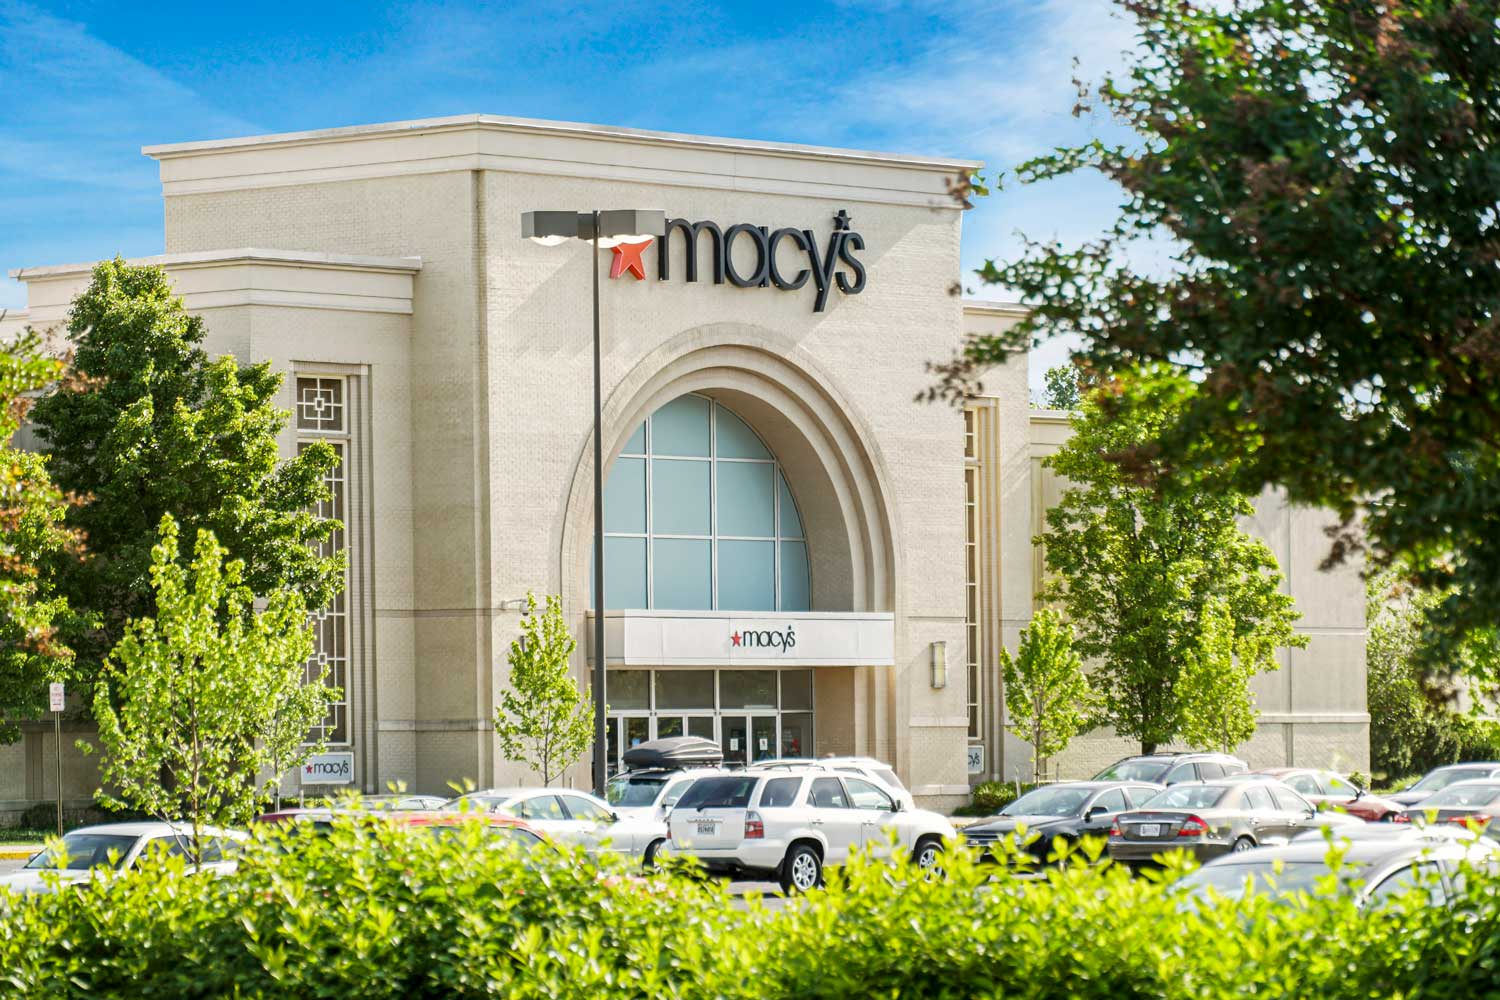 Macy's is 15 minutes from Columbia Park Apartments in Landover, MD